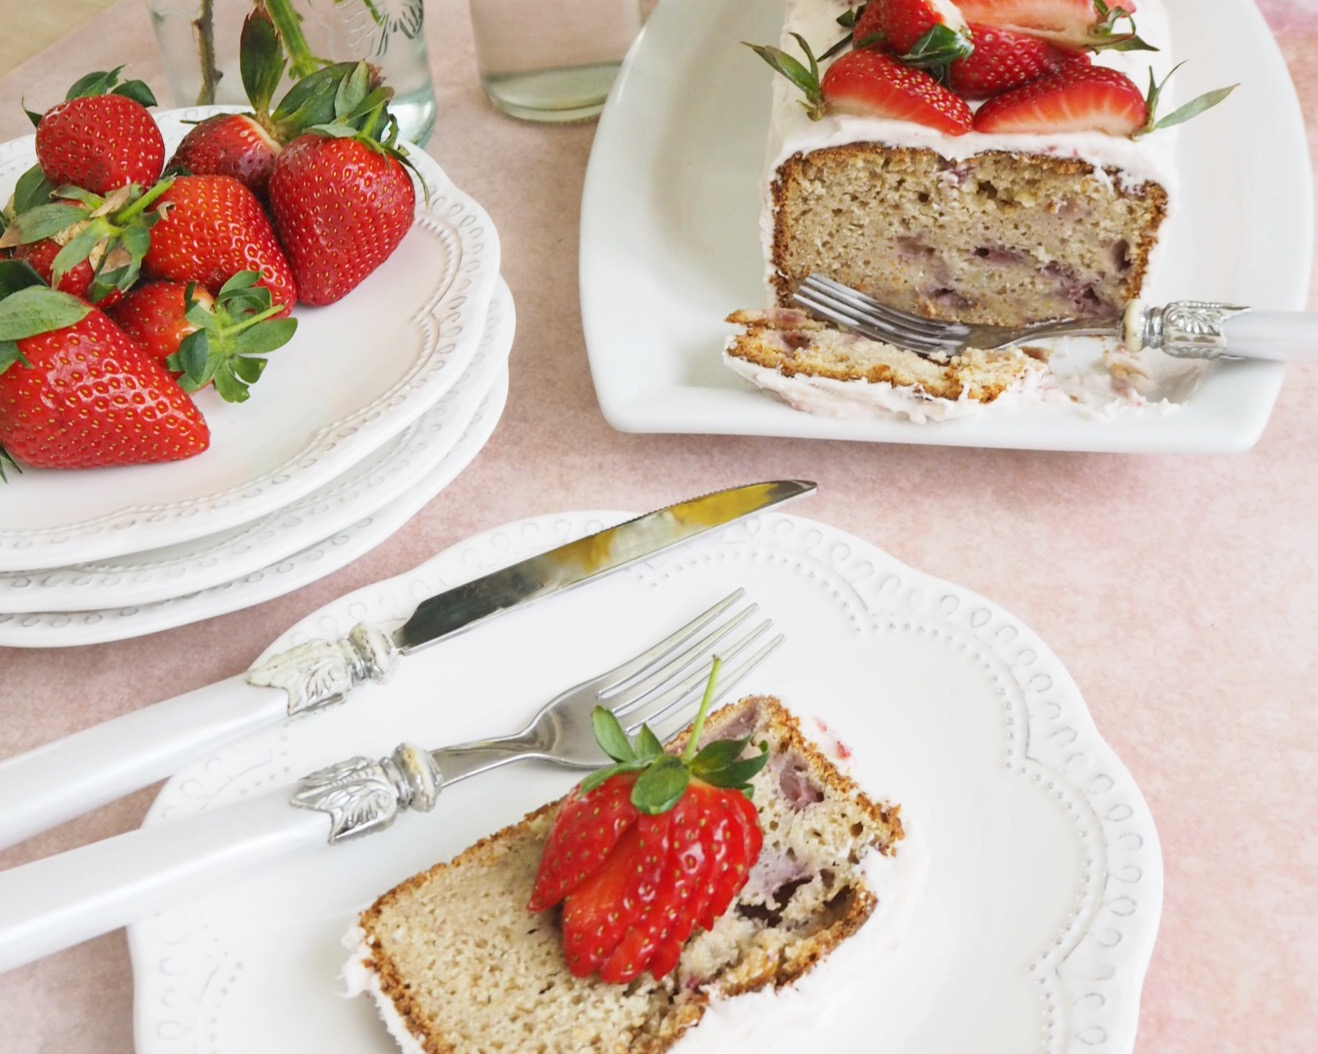 Strawberry bread with cream cheese frosting and fresh strawberries on top, sliced to show the inside of the loaf. A slice is on a plate to the right of the bread, and another plate has additional strawberries